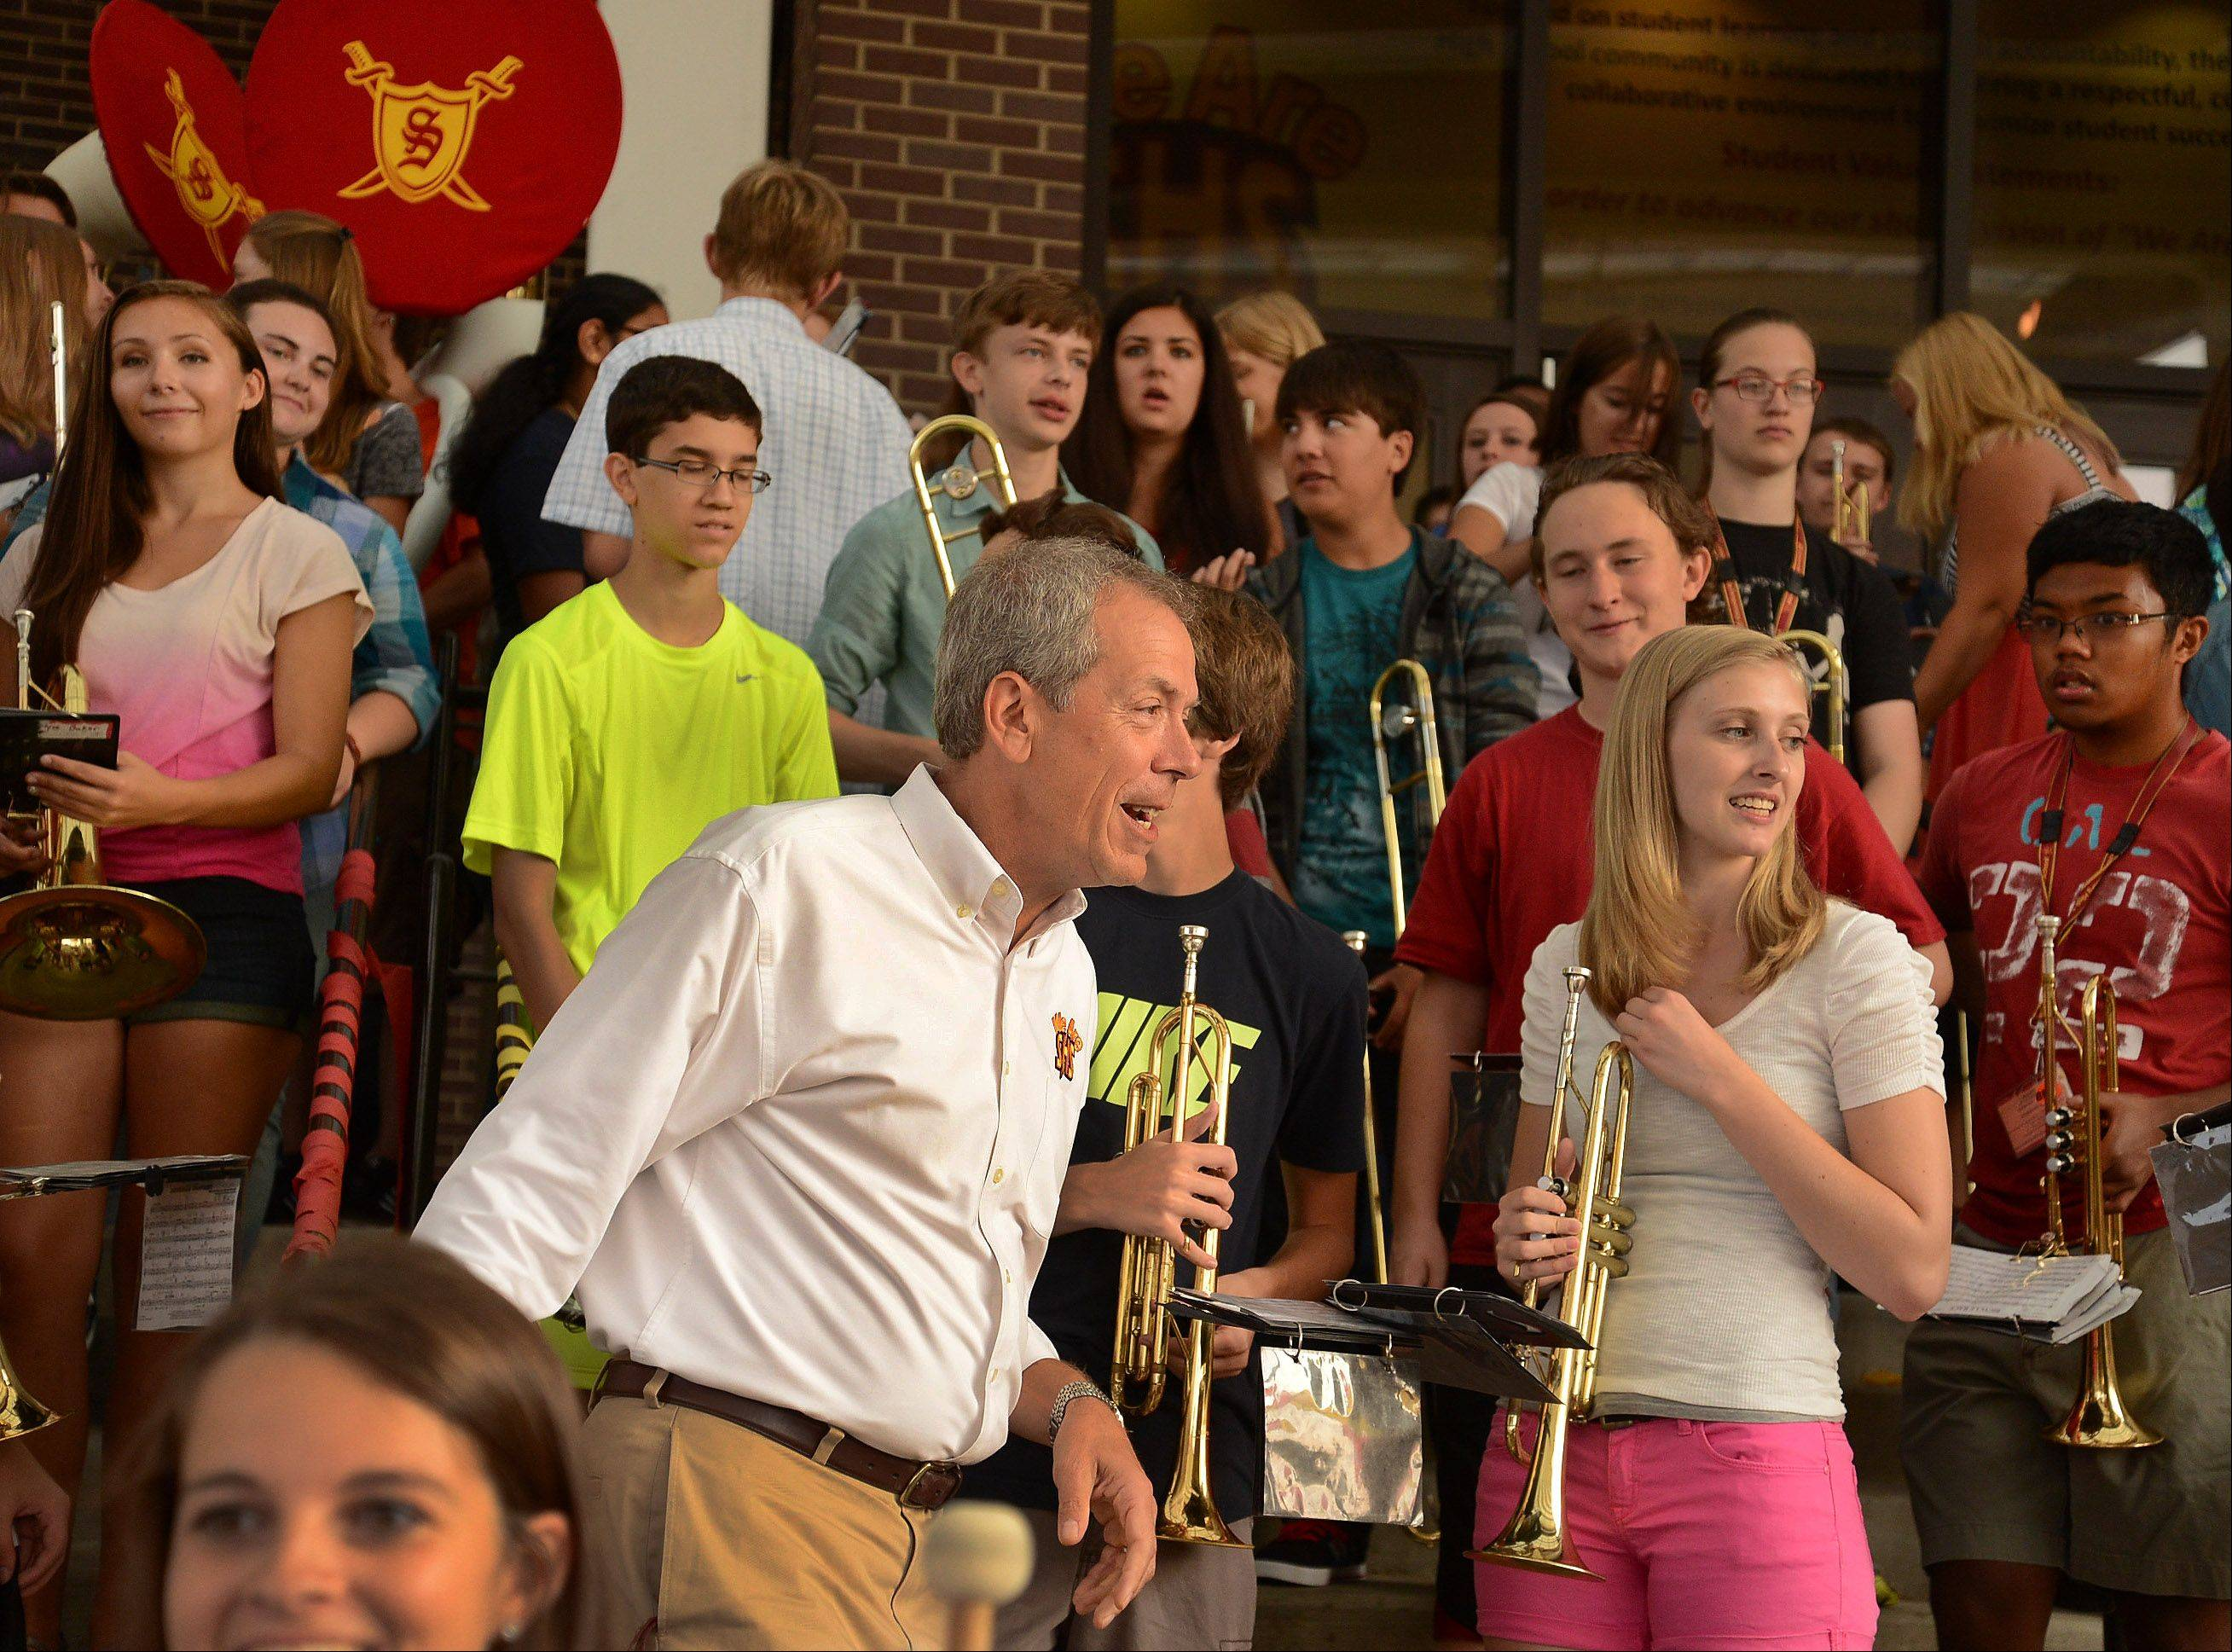 Schaumburg High School band director Kevin Miller leads the marching band in a performance on the front steps of the building during the first day of his last year teaching at the school.